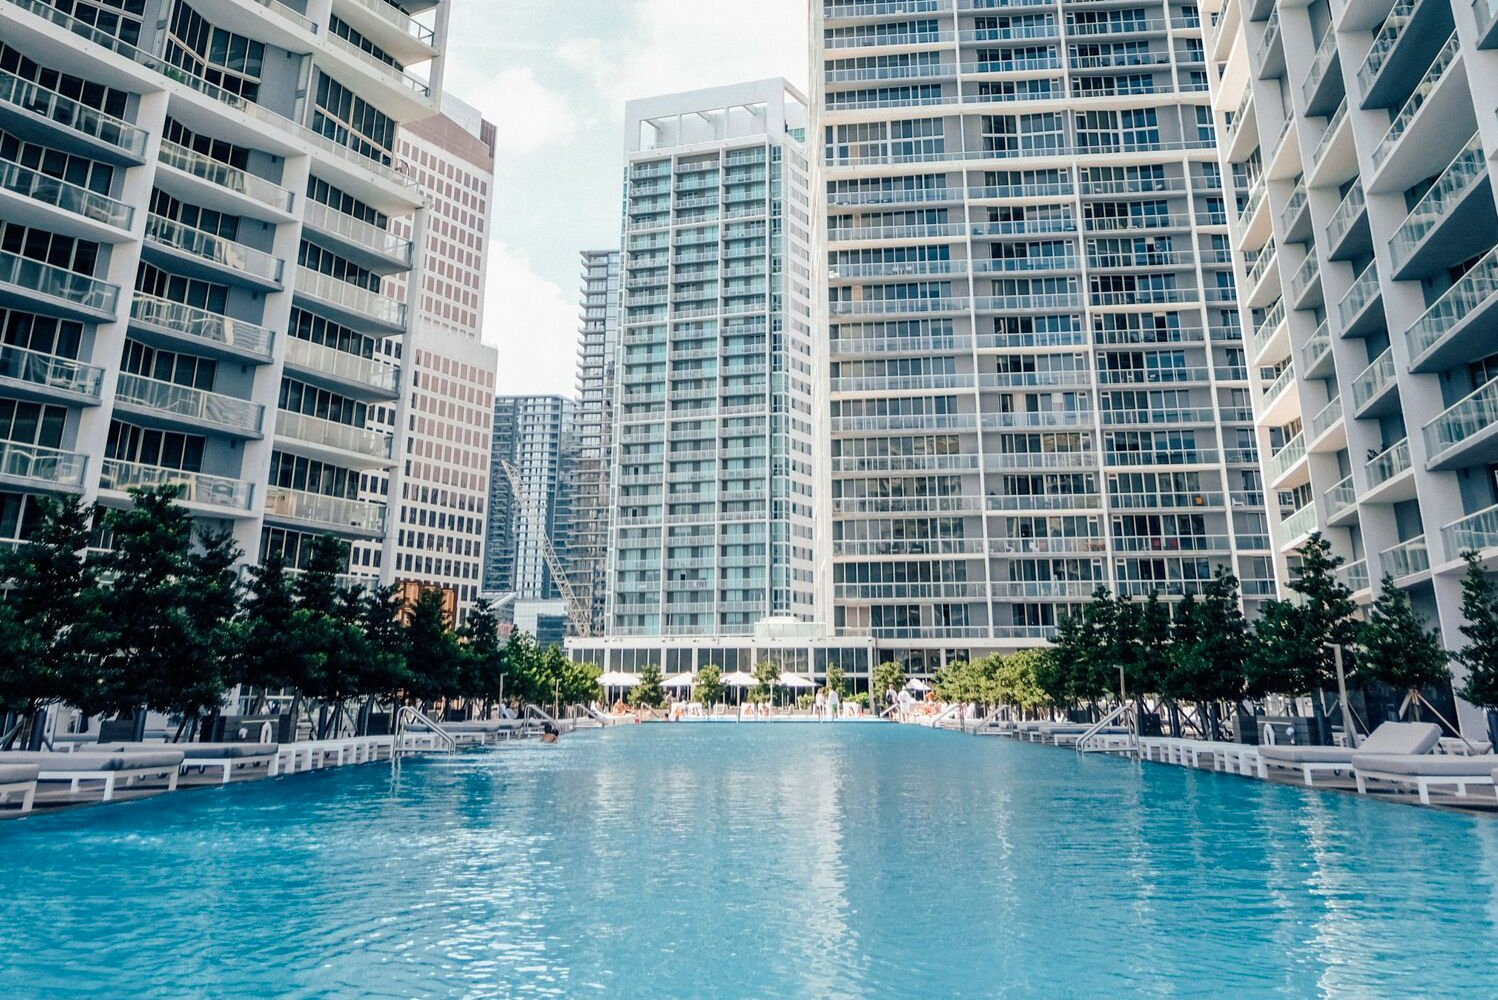 W Miami also designated the 15th floor pool as the WET Deck and the hotel's official pool.